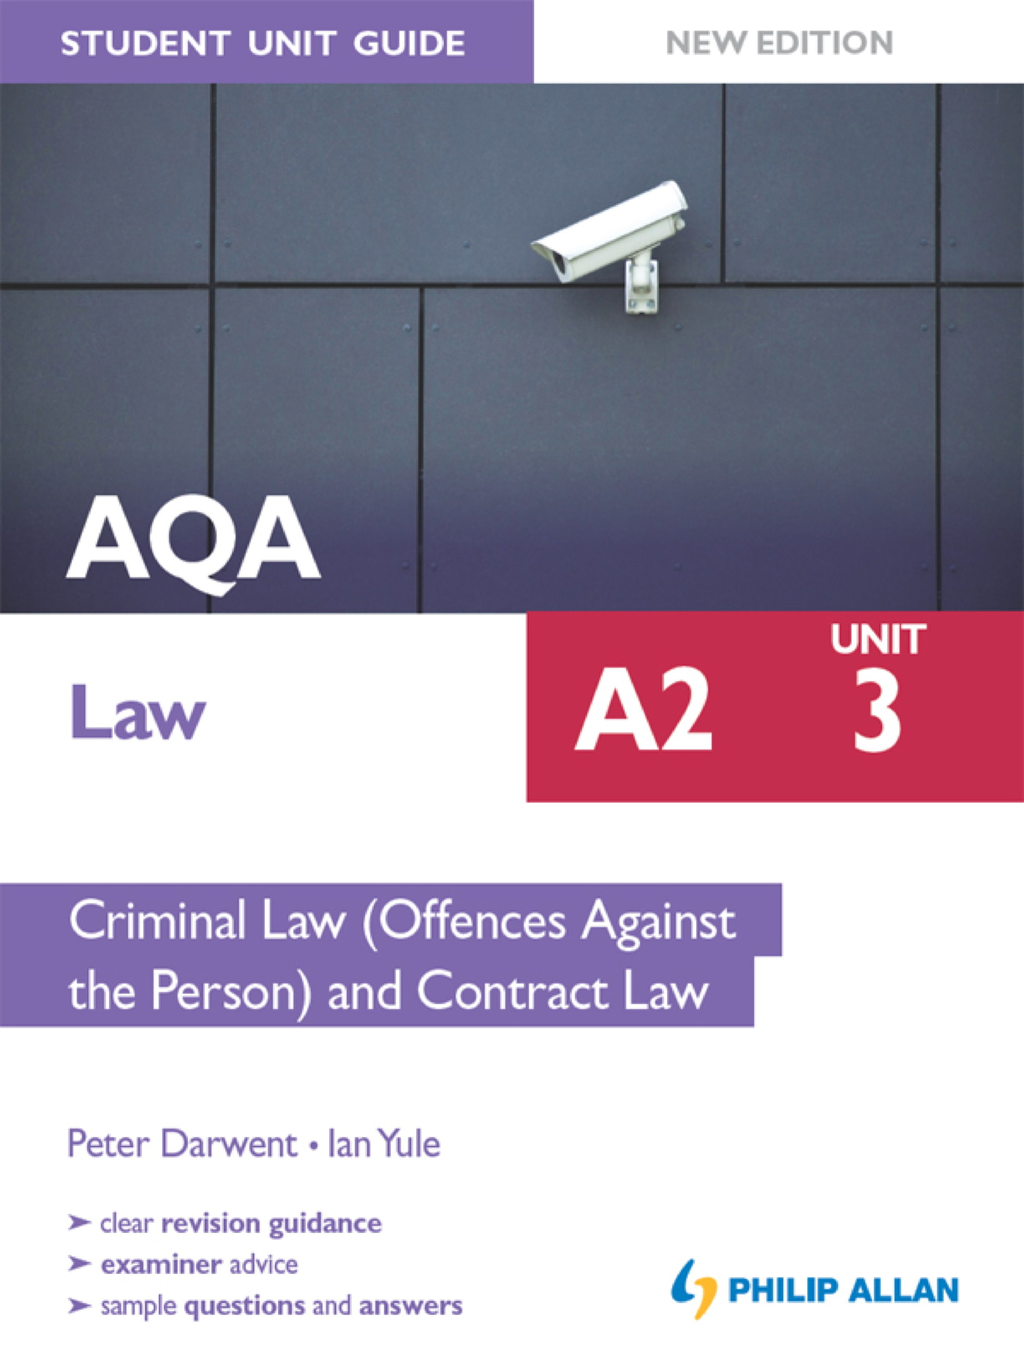 AQA Law A2 Student Unit Guide: Unit 3 New Edition: Criminal Law (Offences Against the Person) and Contract Law ePub